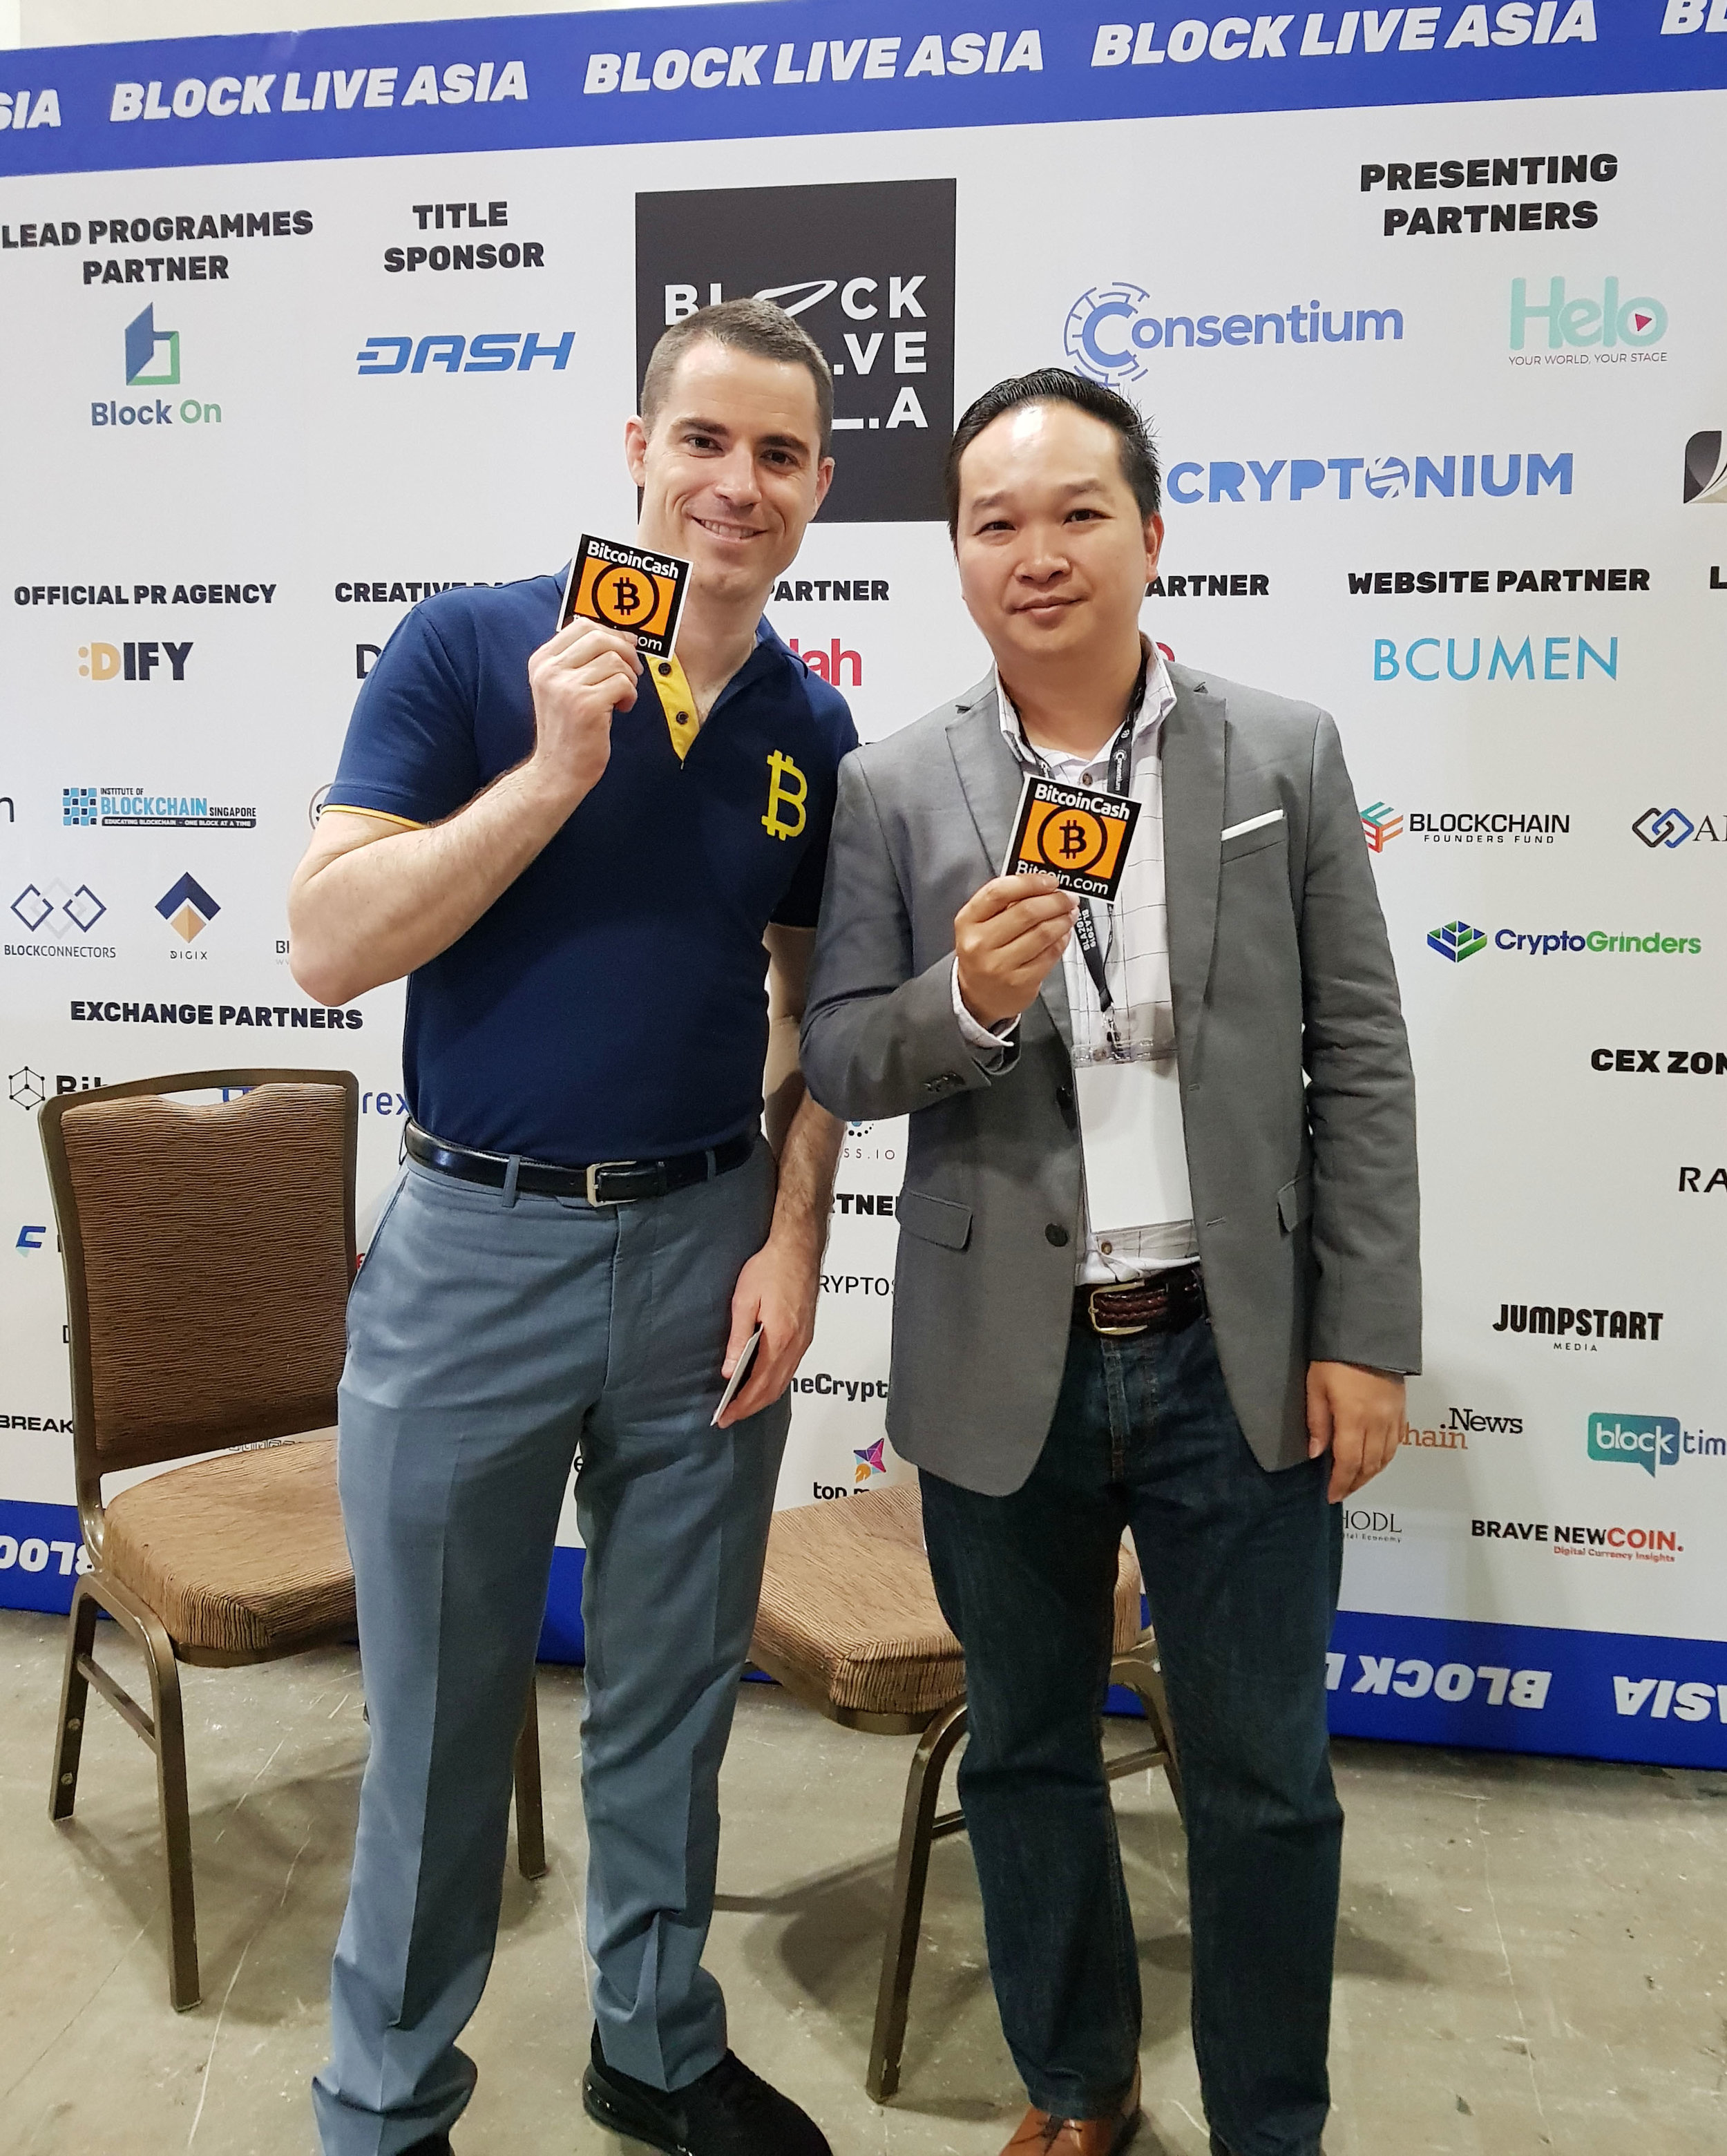 With Roger Ver at Block Live Asia 2019